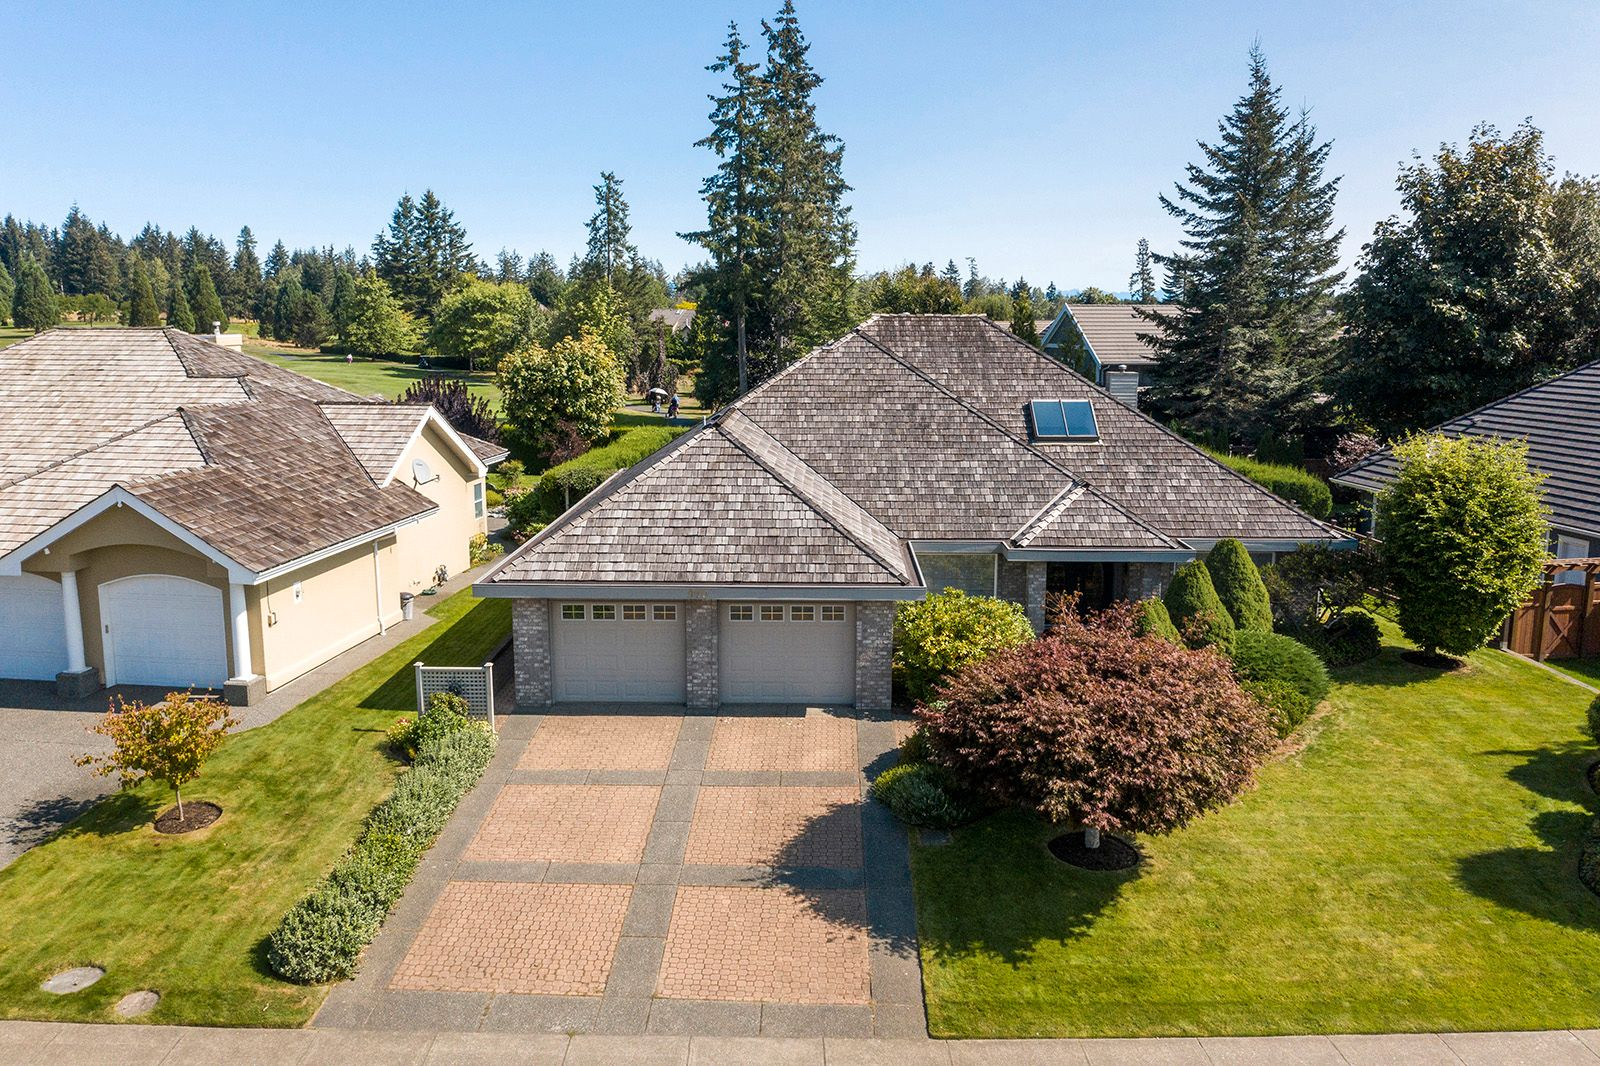 Main Photo: 970 Crown Isle Dr in : CV Crown Isle House for sale (Comox Valley)  : MLS®# 854847